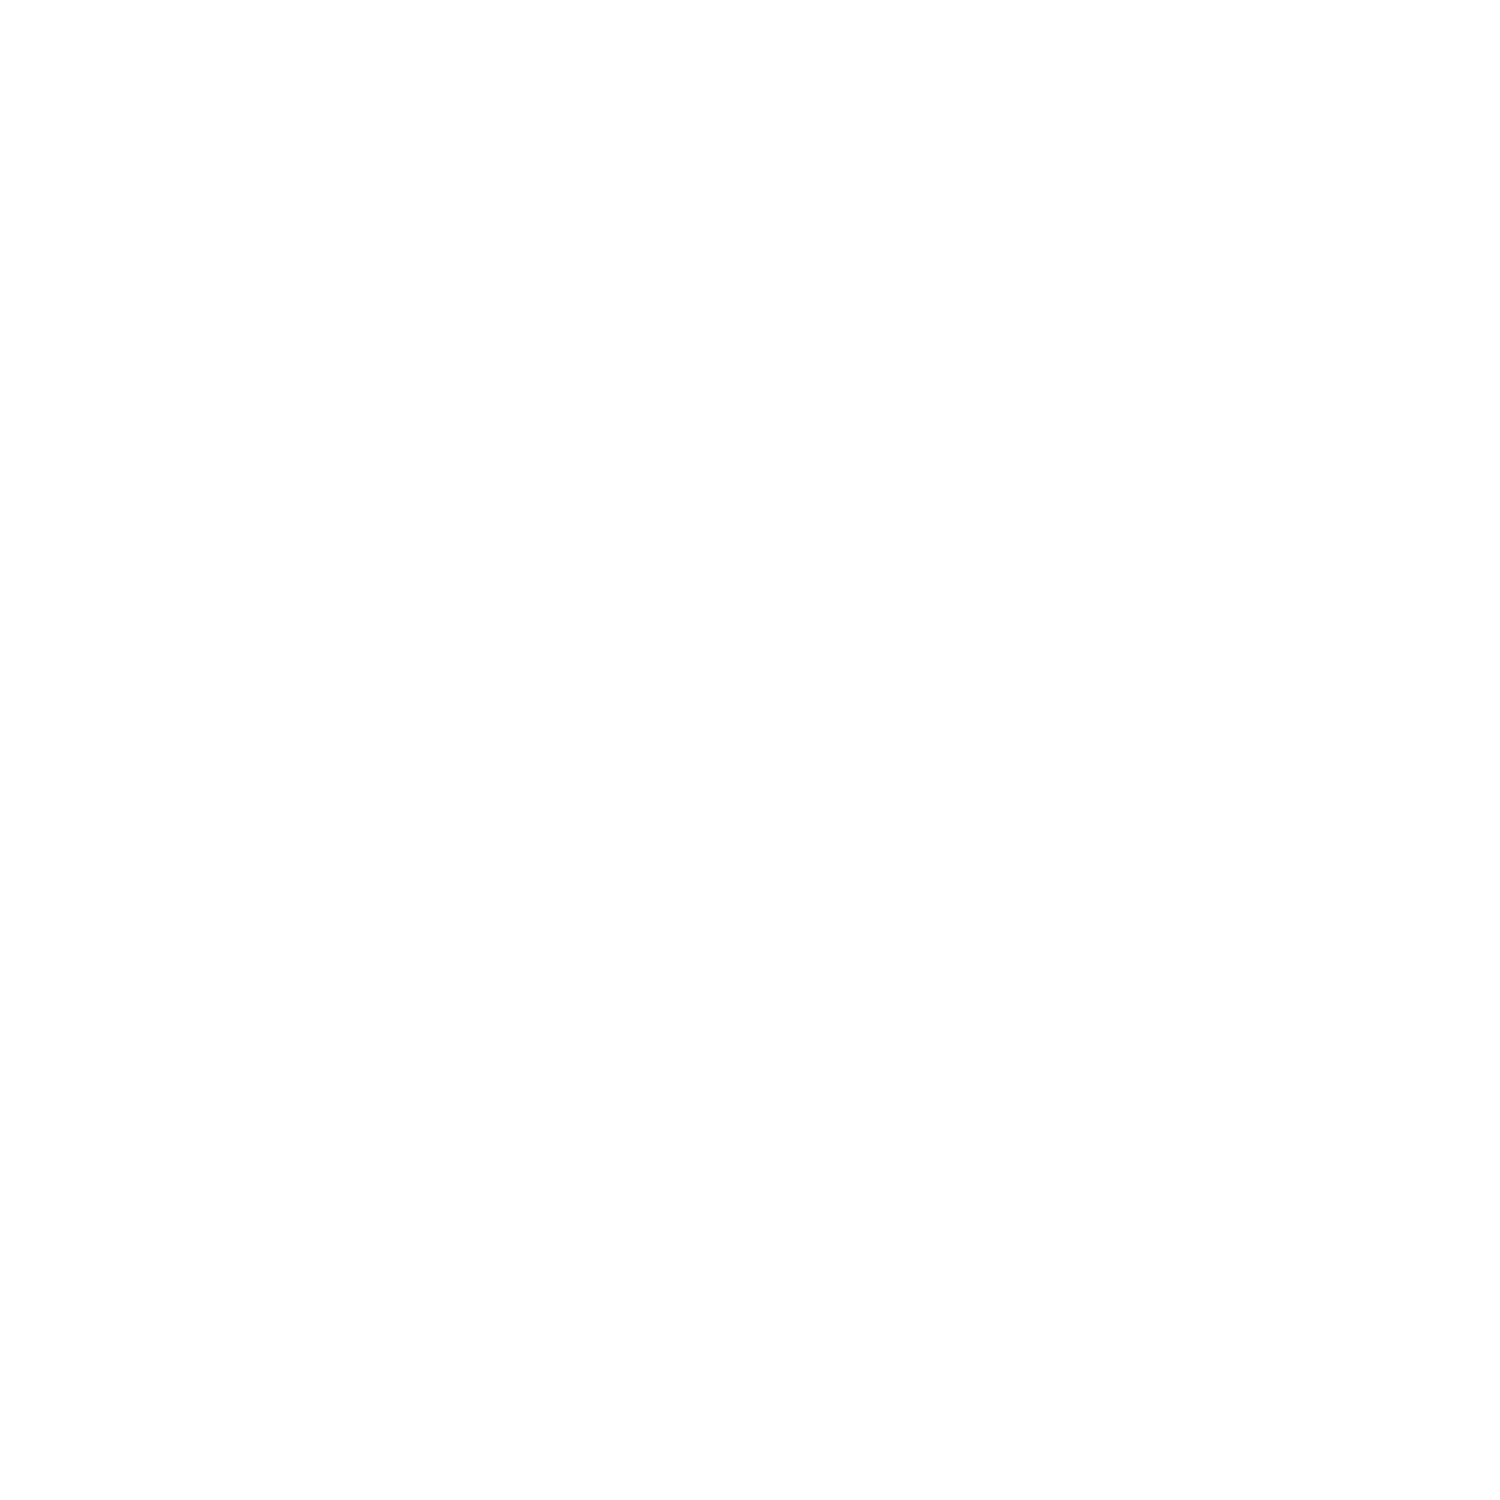 The Blue Poppy